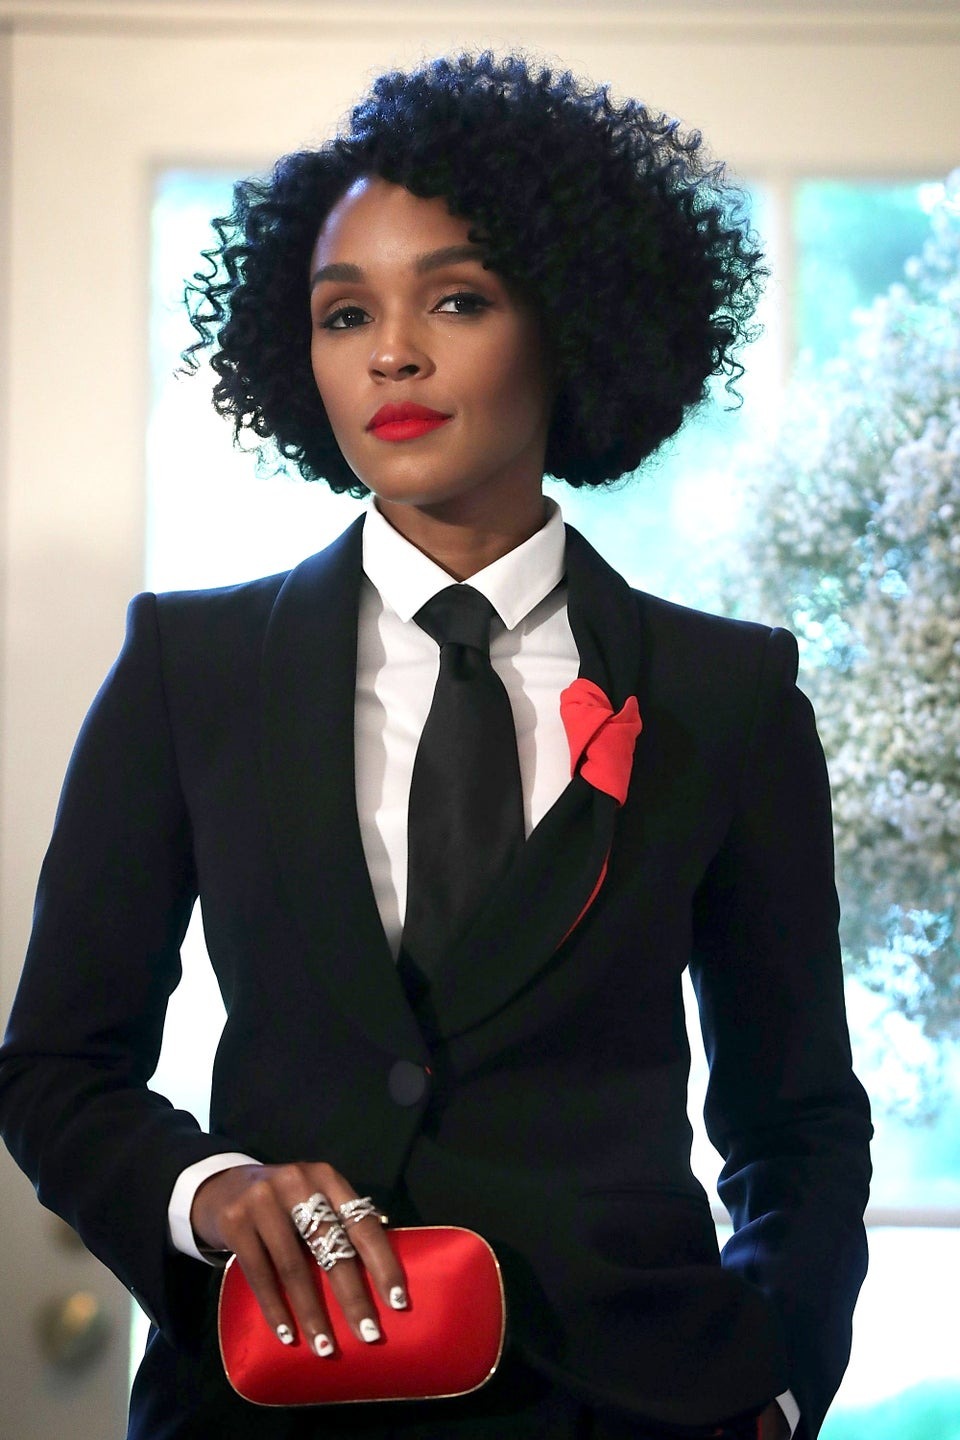 Janelle Monáe Shares Stunning 'No Make-Up' Selfie and Lets down Natural Hair